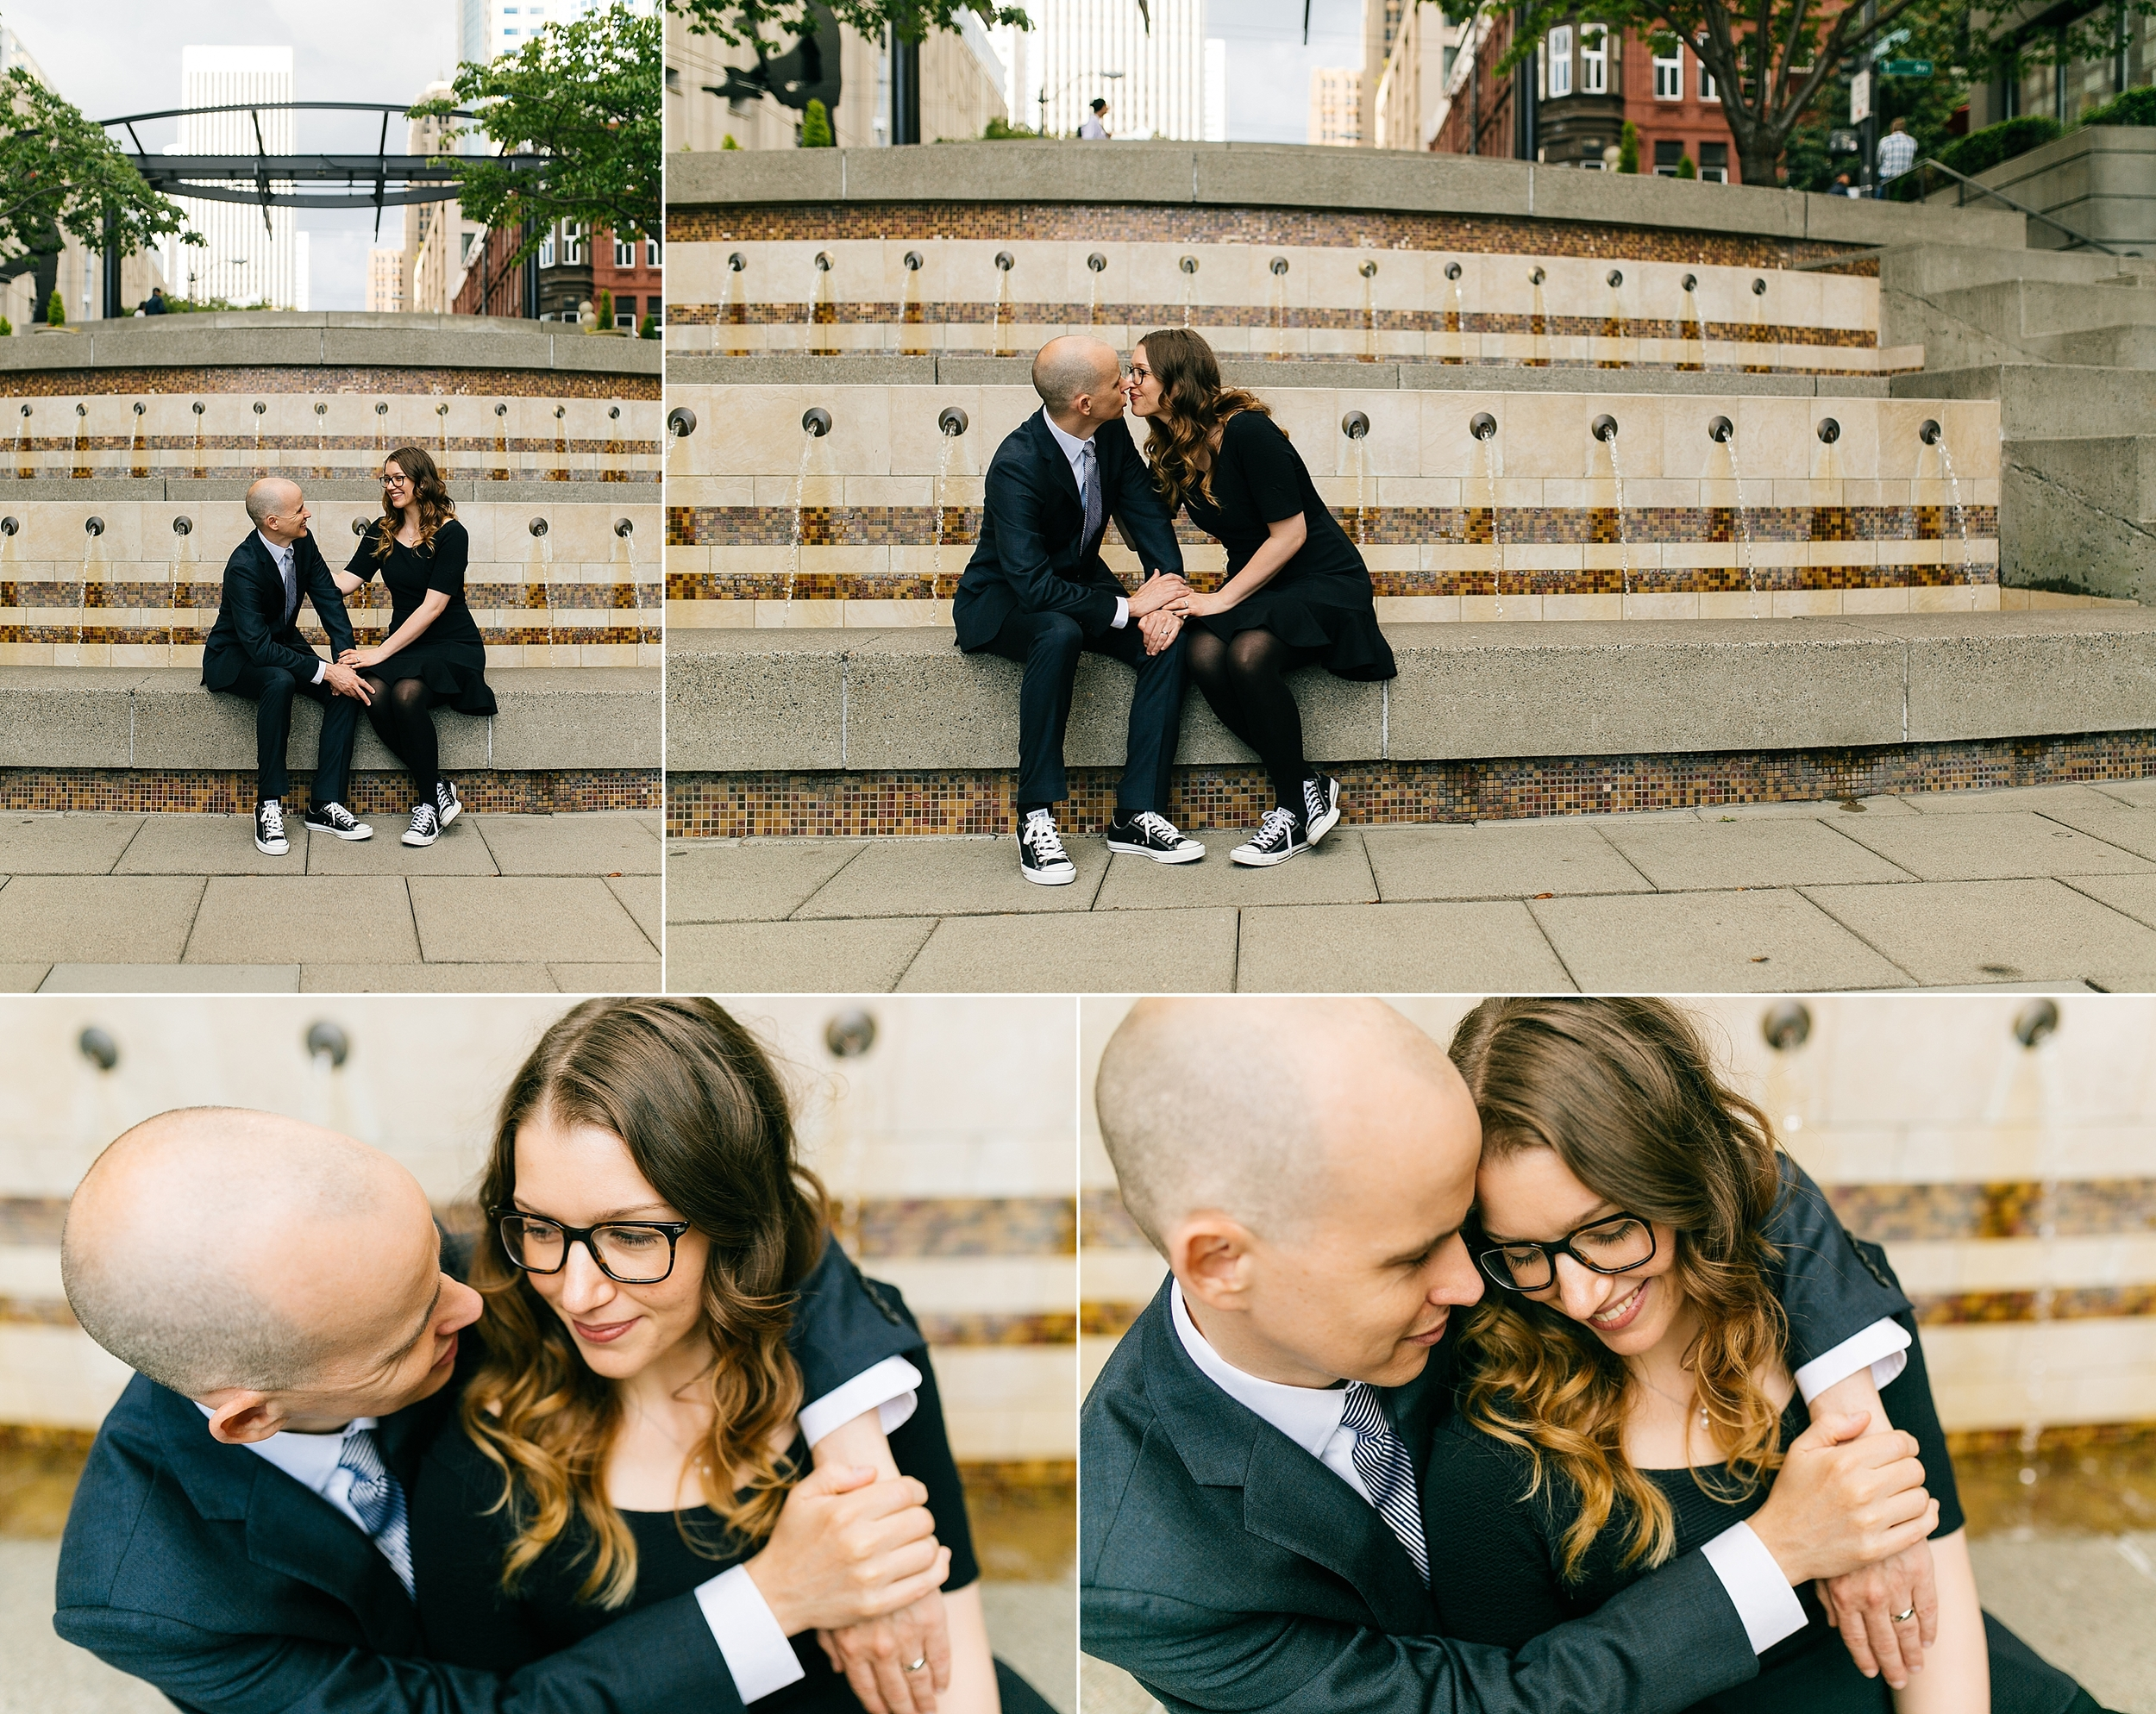 ashley vos photography seattle area courthouse wedding photographer_0501.jpg